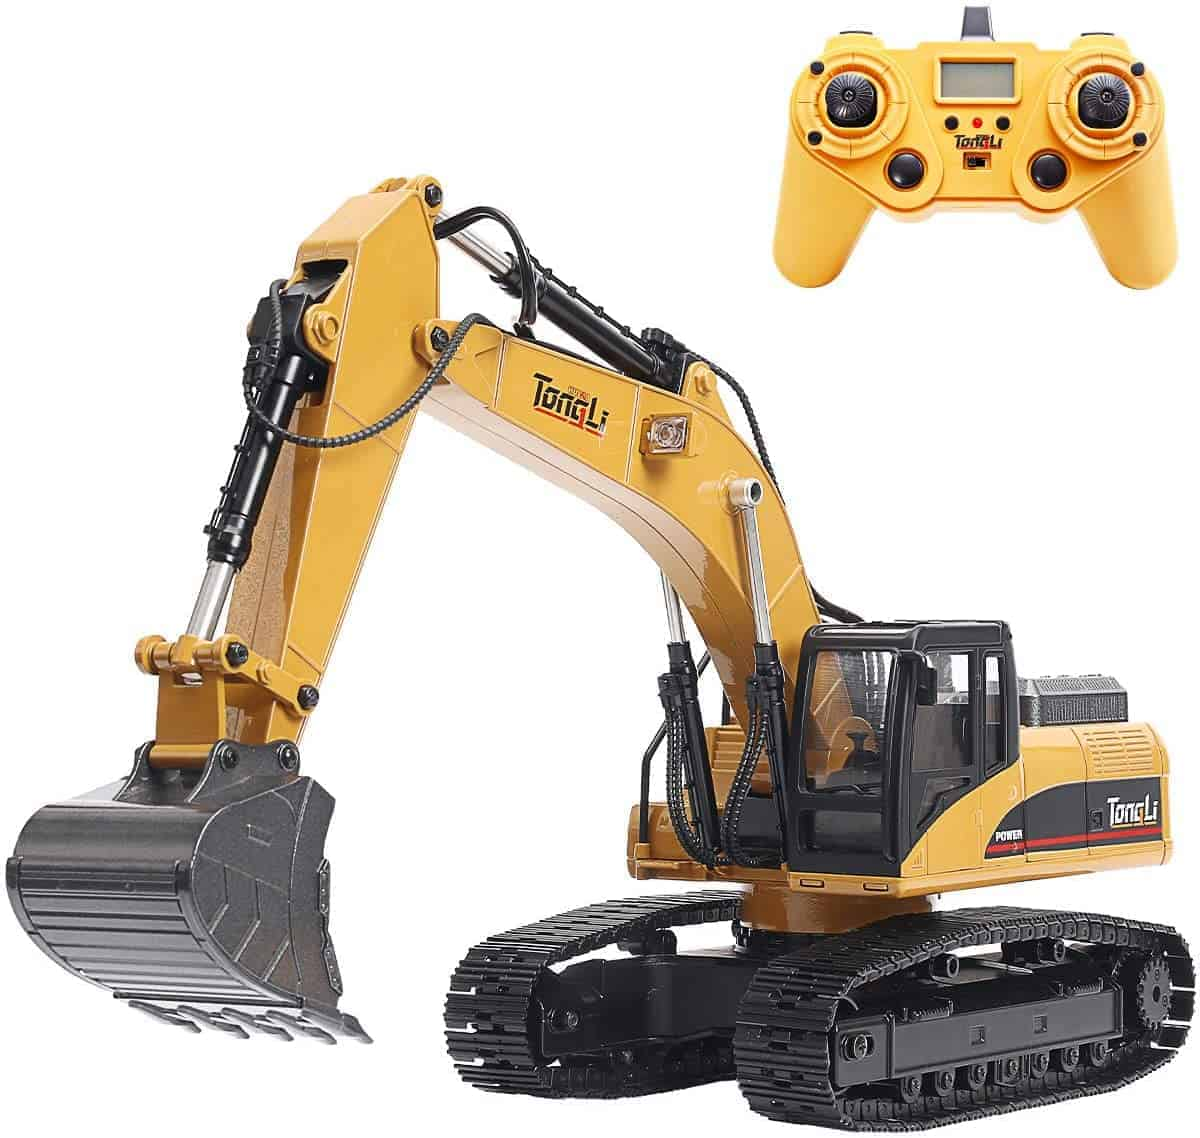 TongLi 1580 1 14 Scale All Metal RC Excavator Toy for Adults